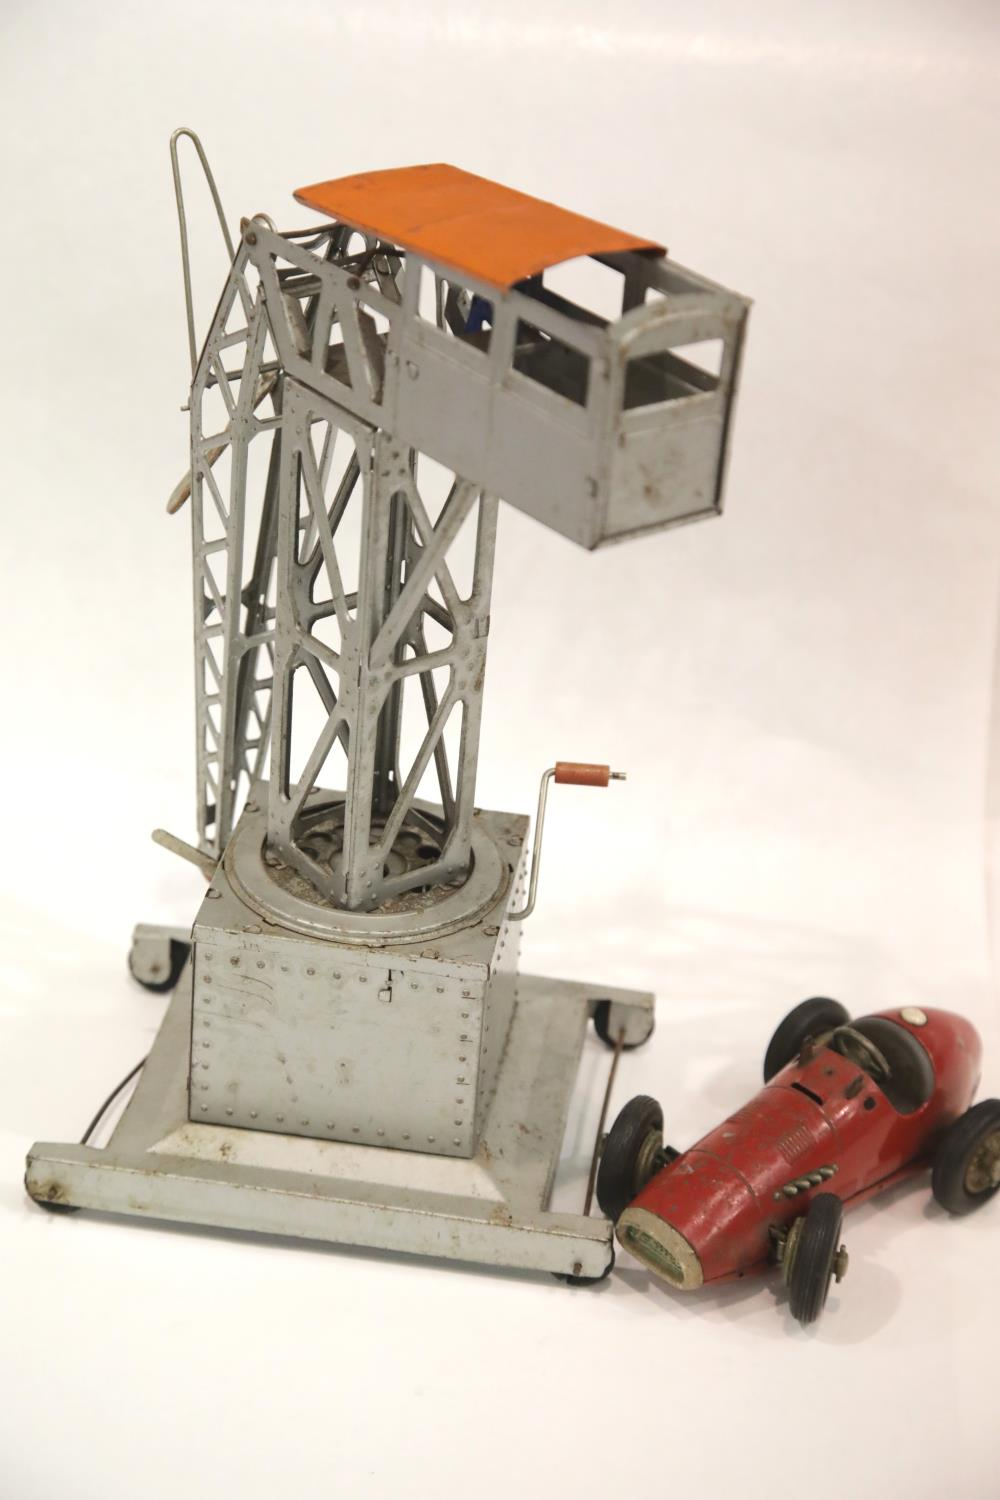 Lot 668 - Schuco Clockwork PMX racing car and a large tinplate toy crane. P&P Group 1 (£14+VAT for the first